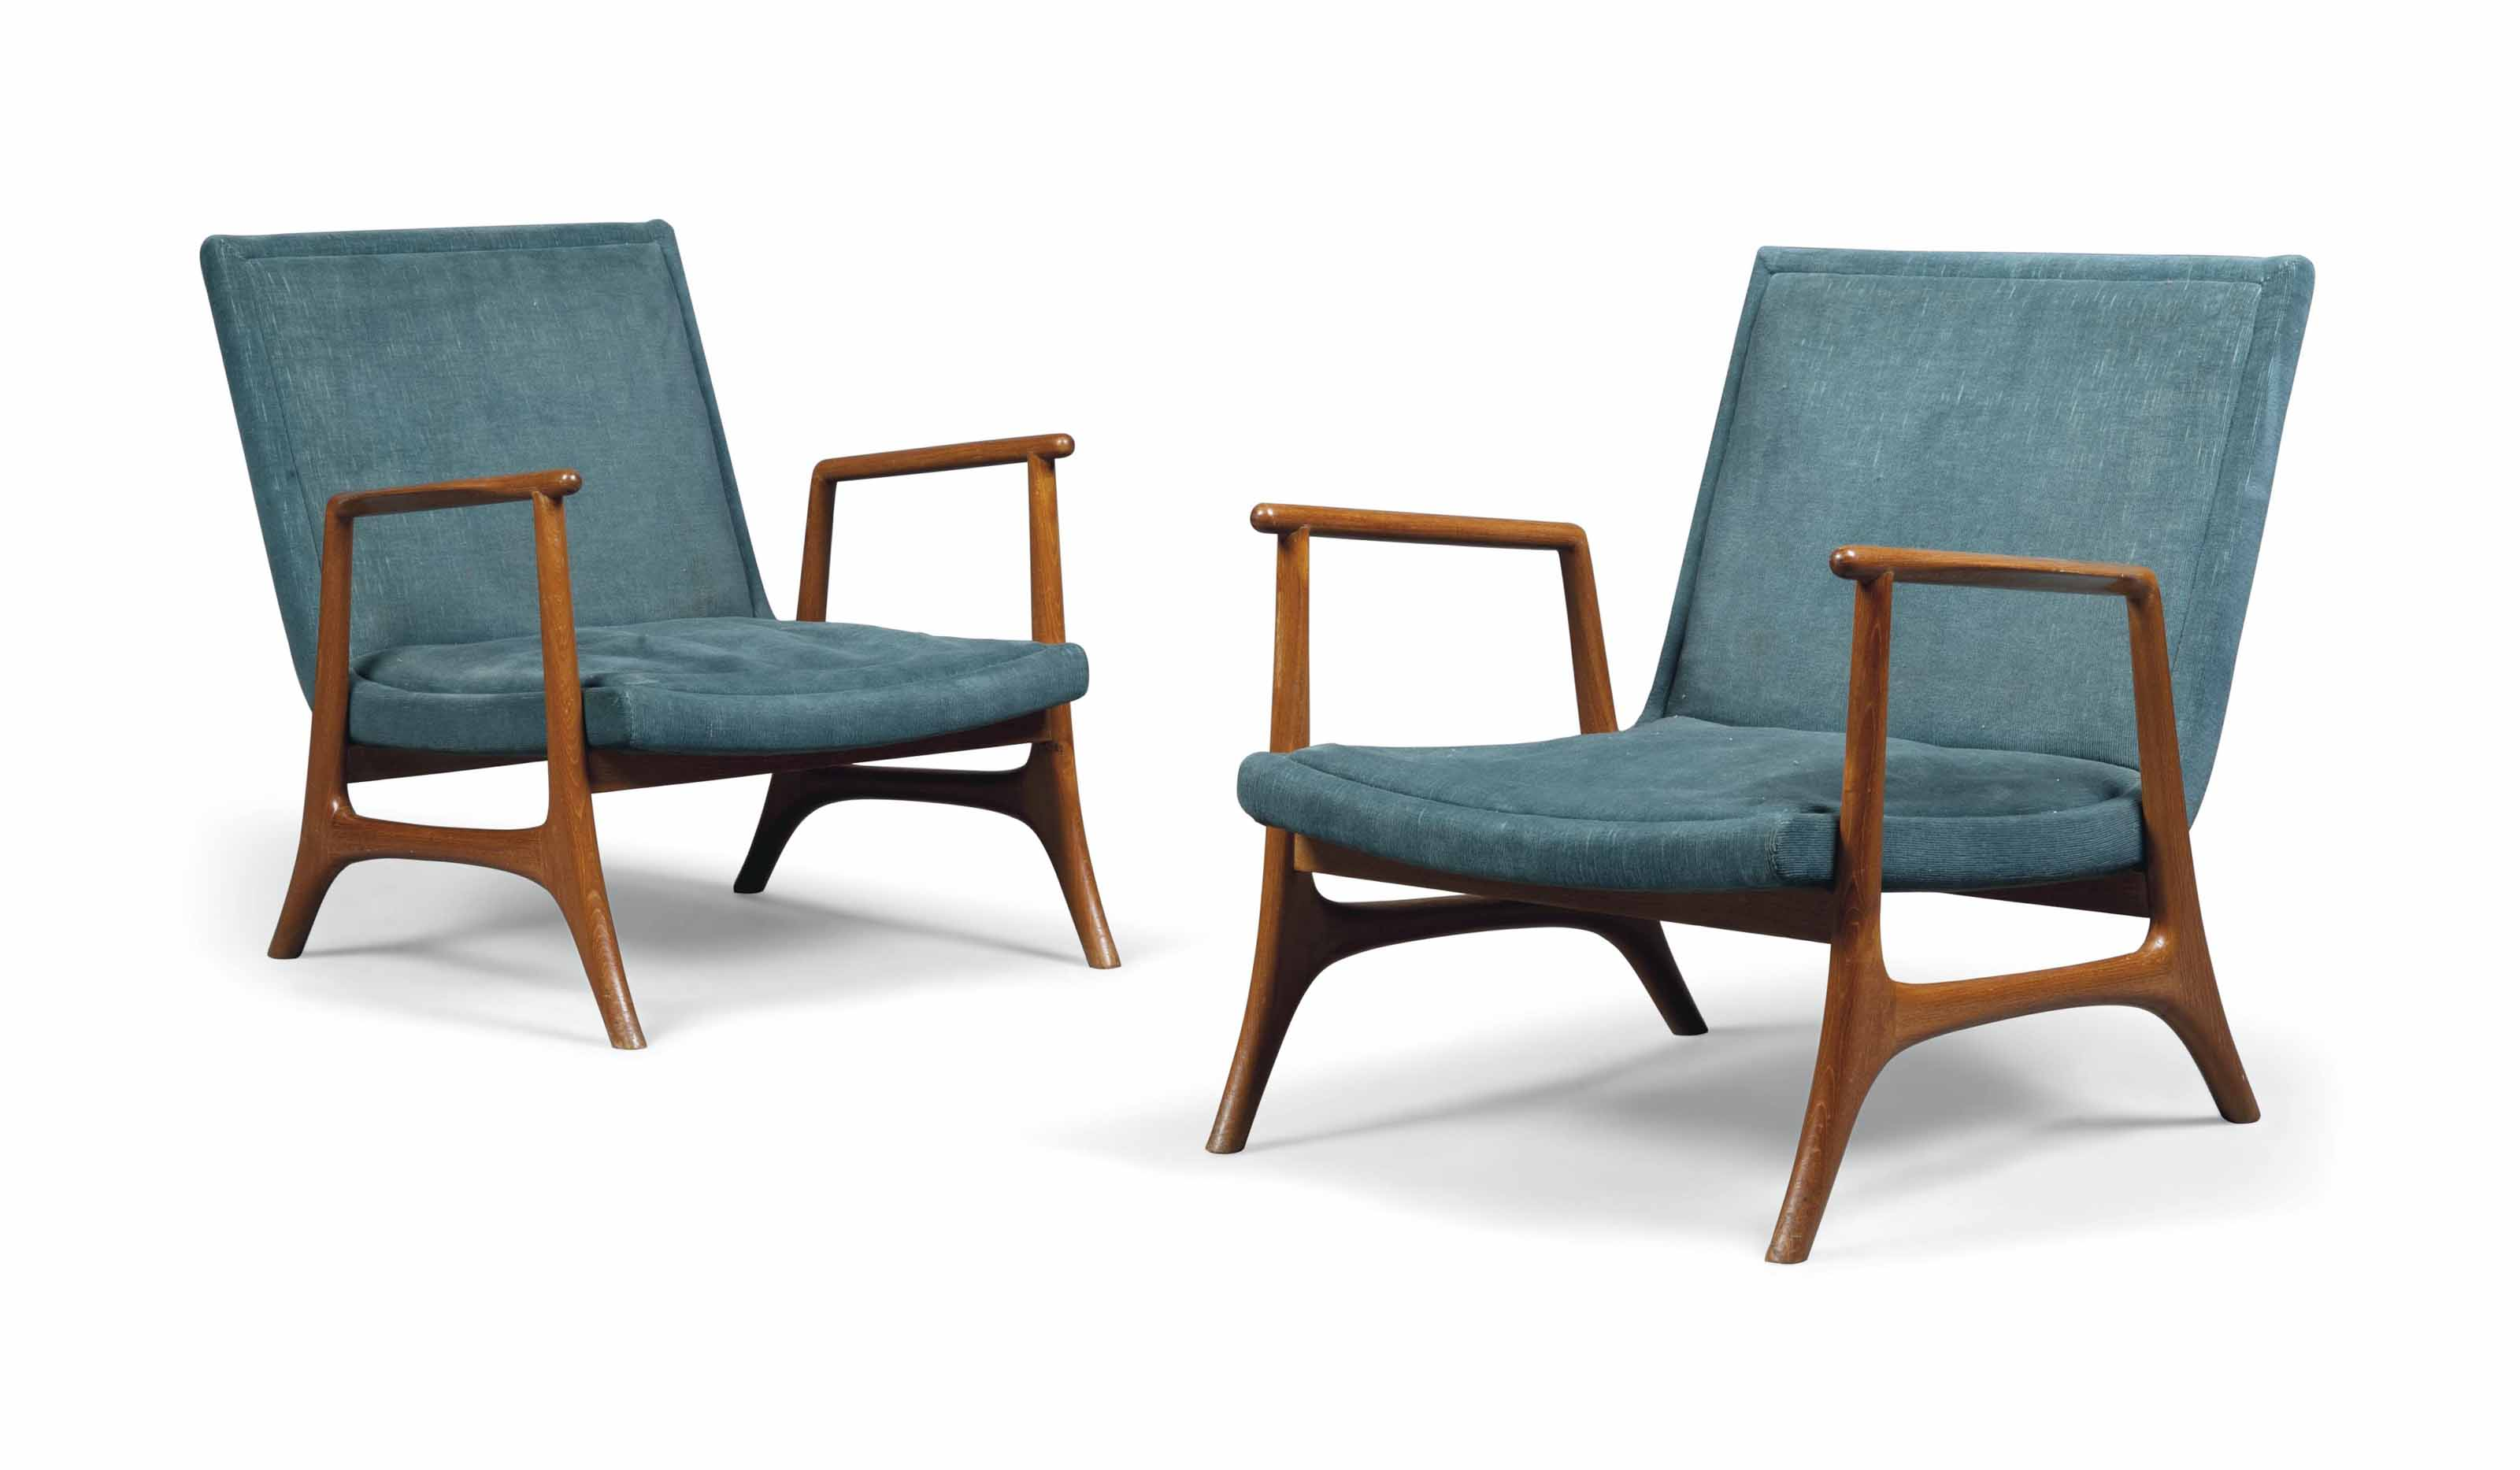 A PAIR OF TEAK AND UPHOLSTERED